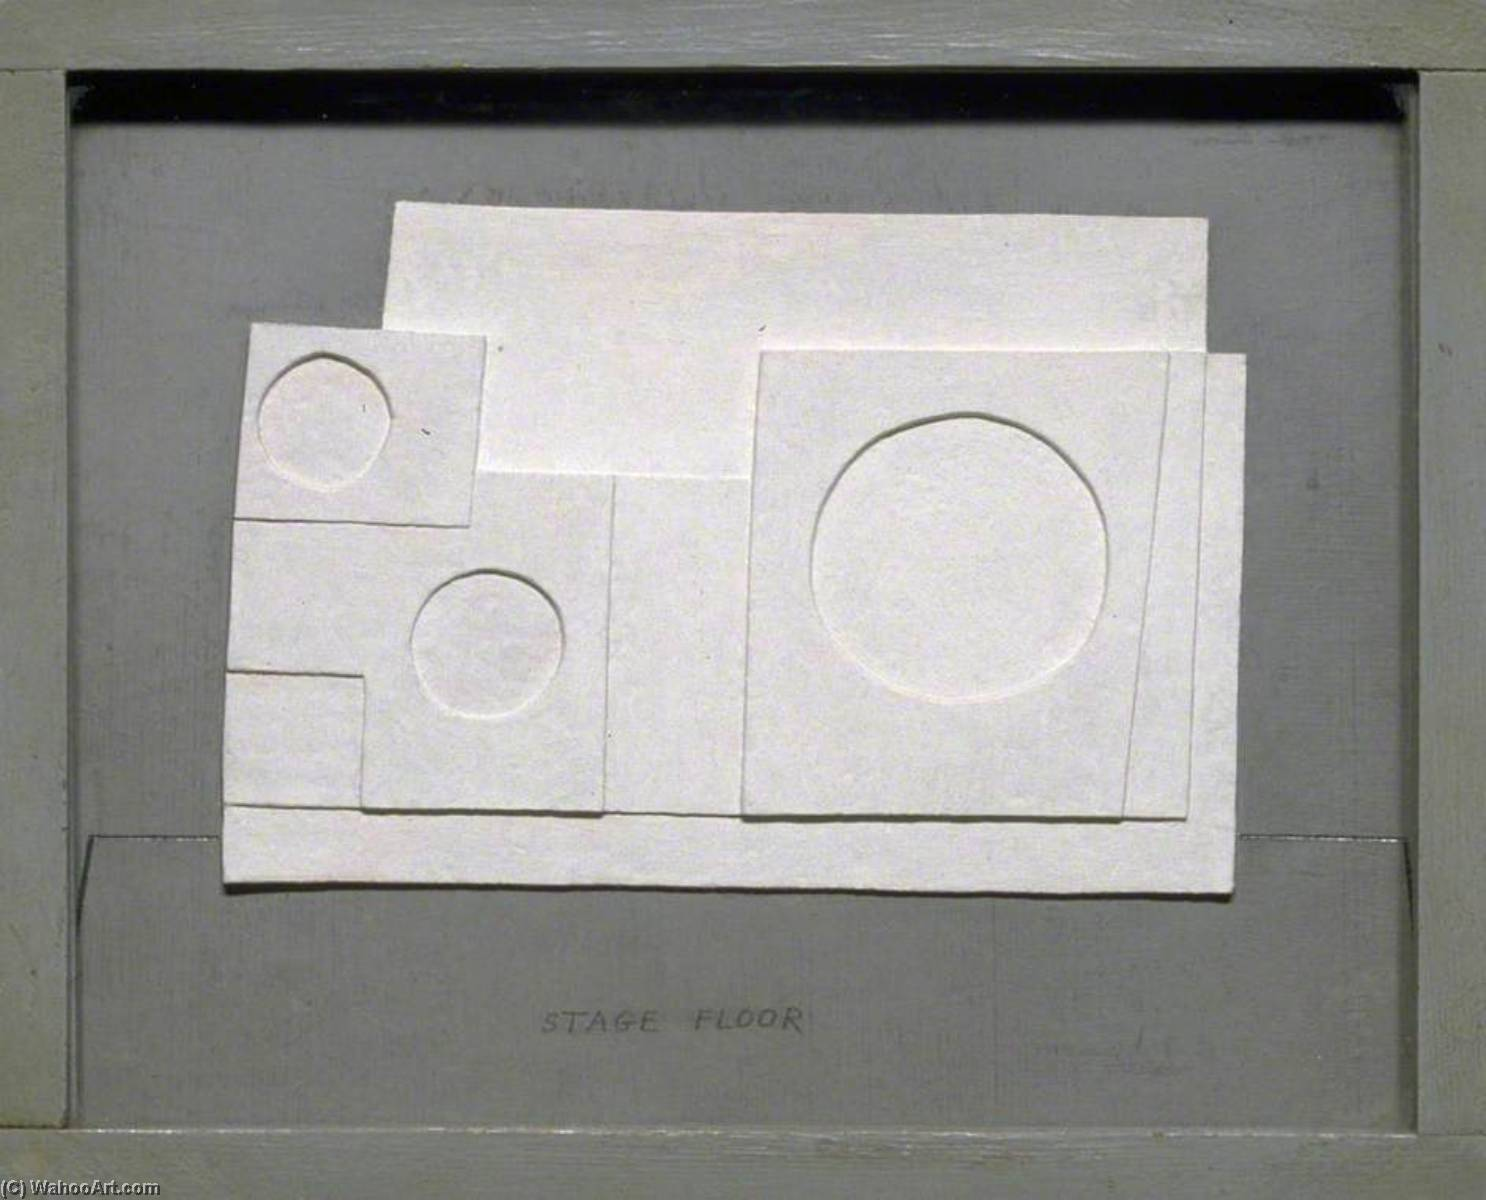 1934 progetto per massine per beethoven 7th Sinfonia Ballerino, olio di Ben Nicholson (1894-1982, United Kingdom)